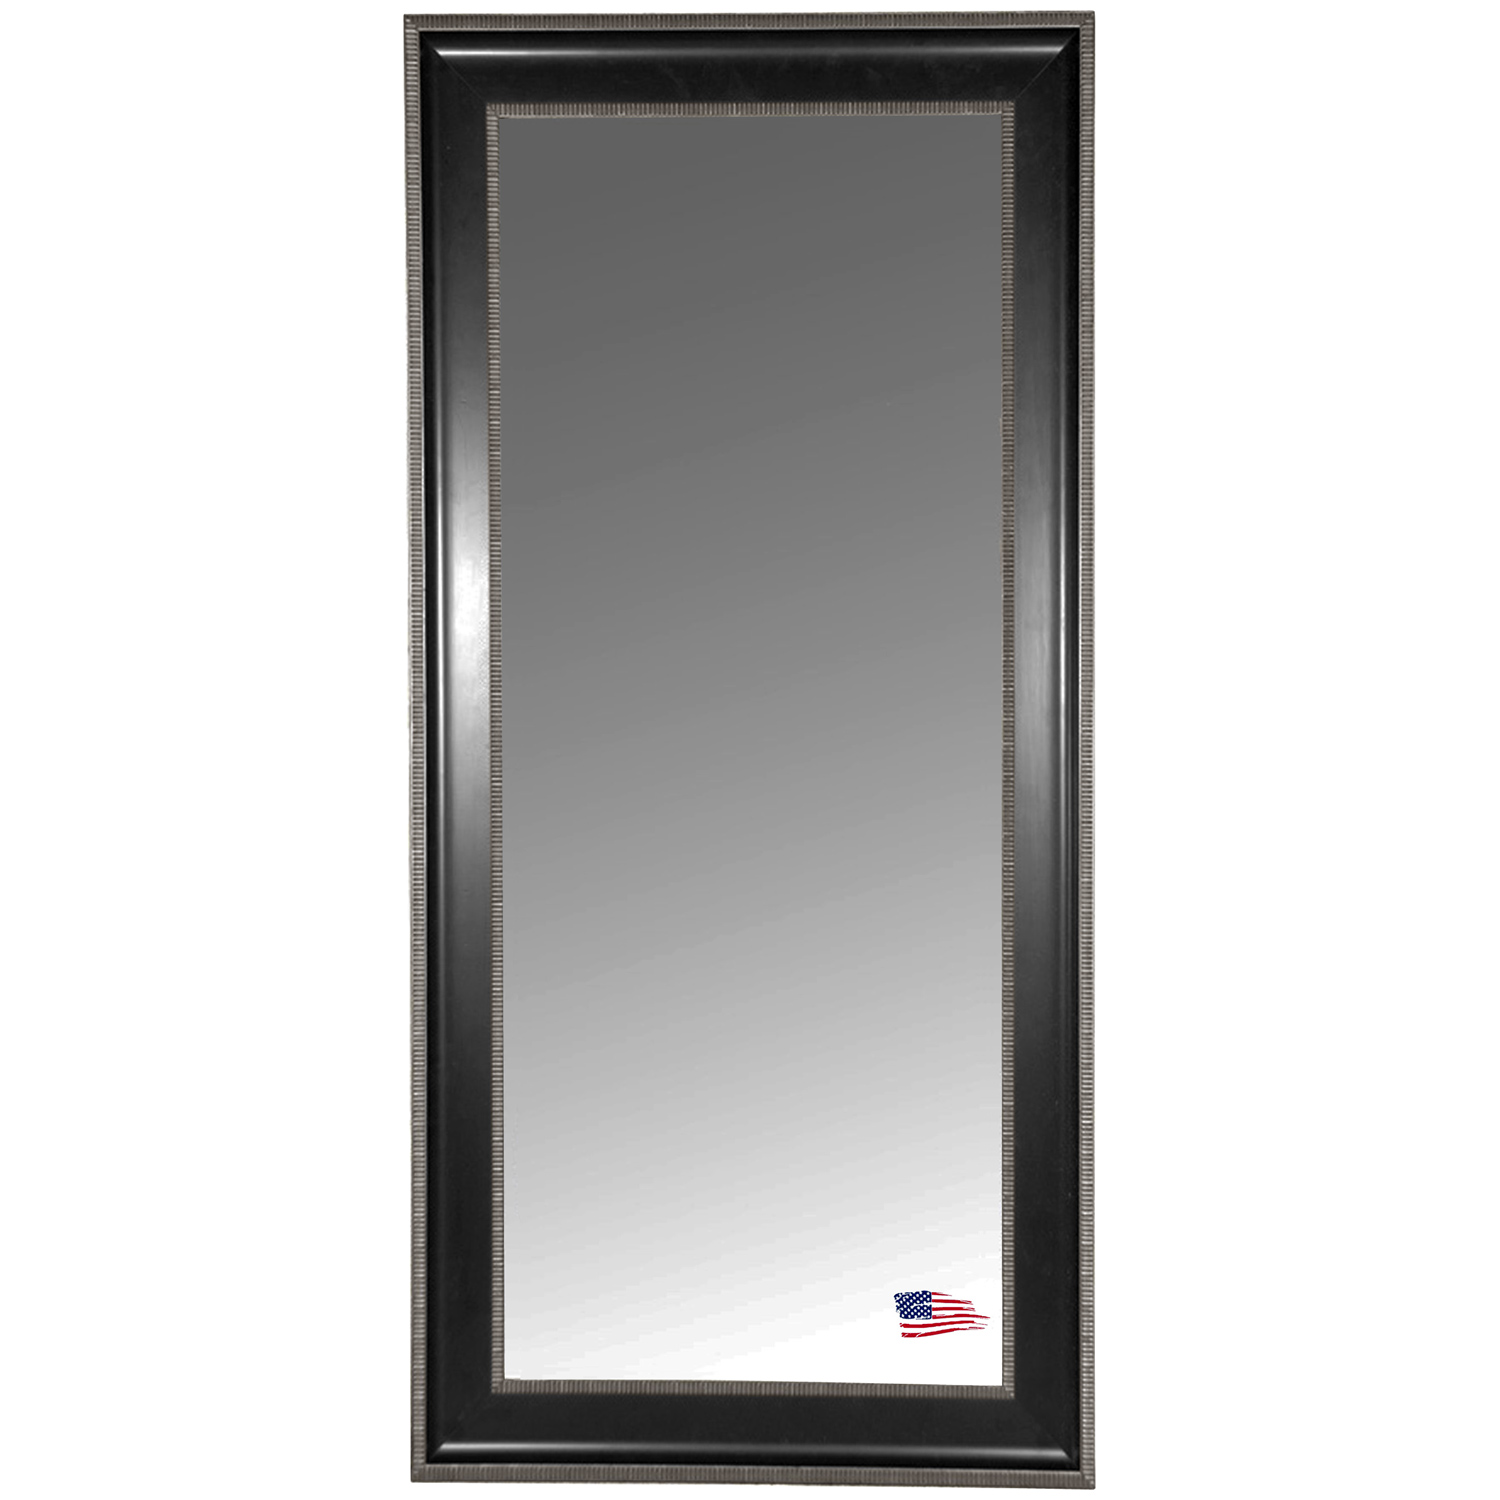 Rectangular Mirror - Black & Silver Caged Trim Frame - RAY-R008T